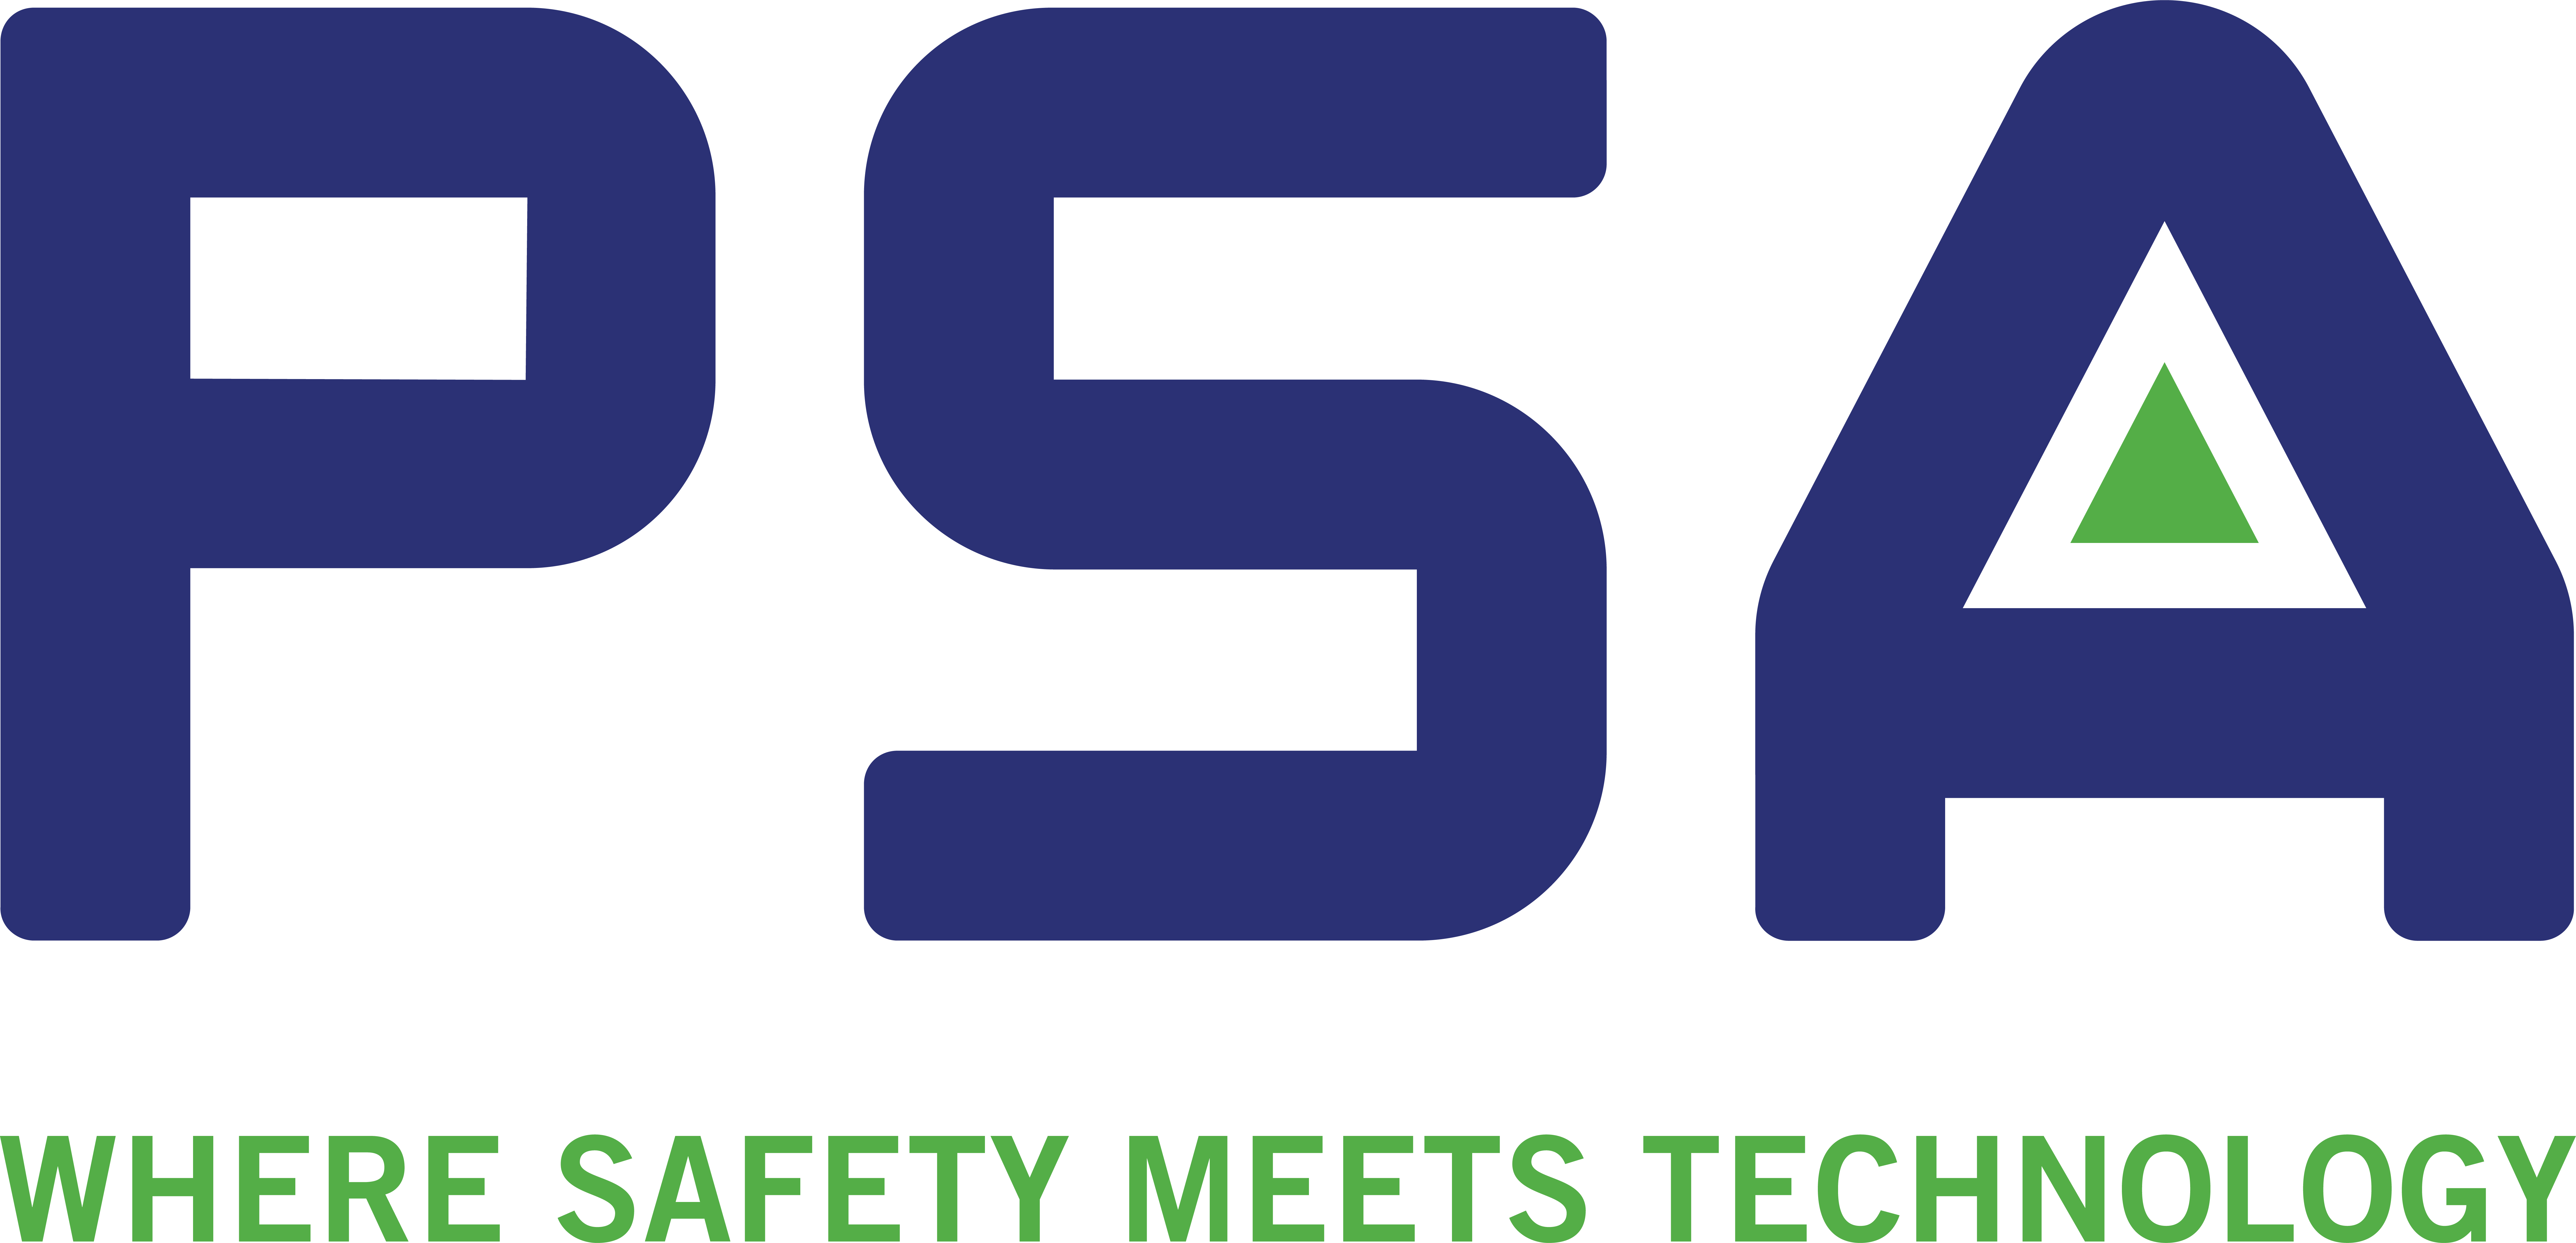 Specialised Safety Equipment, Suppliers | PSA Africa